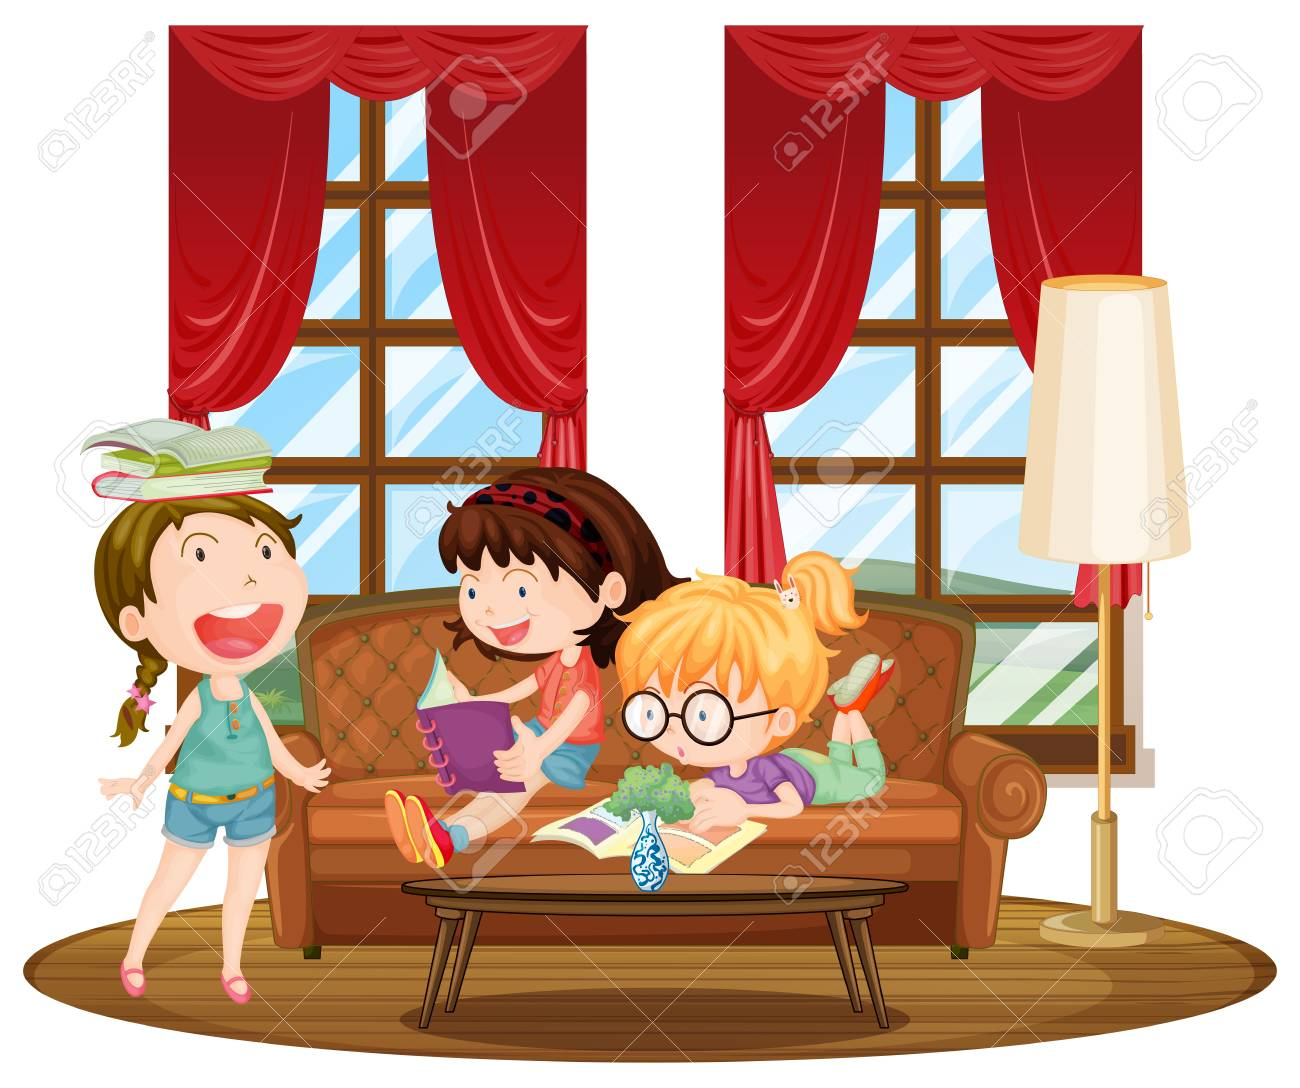 living room pictures clipart decorating ideas with brown sectional three girls reading books in illustration royalty free stock vector 65635285